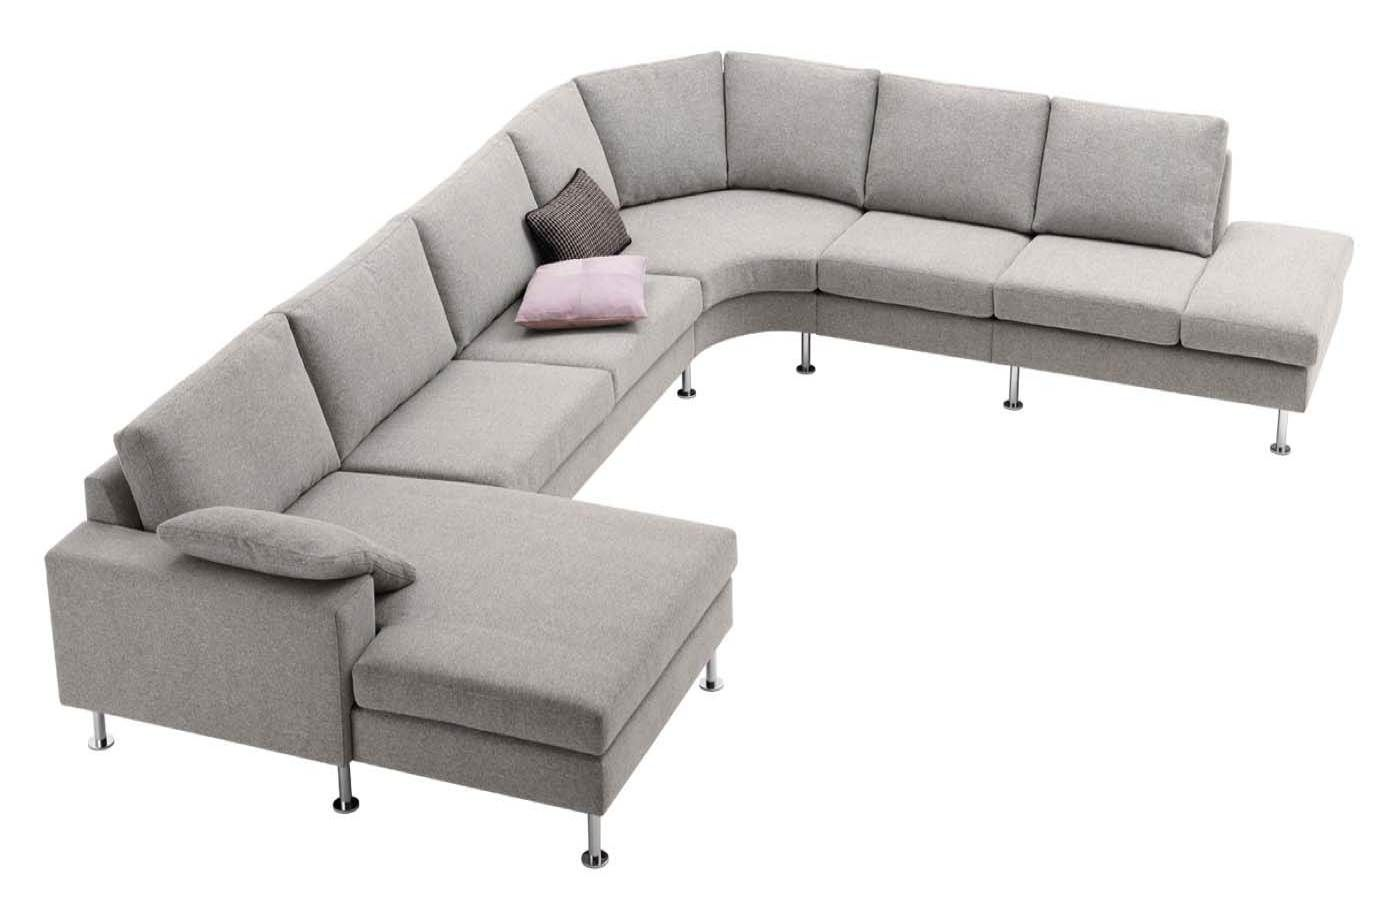 Magnificent Indivi 2 Corner Sofa From Boconcept Ideal For Basement Unemploymentrelief Wooden Chair Designs For Living Room Unemploymentrelieforg